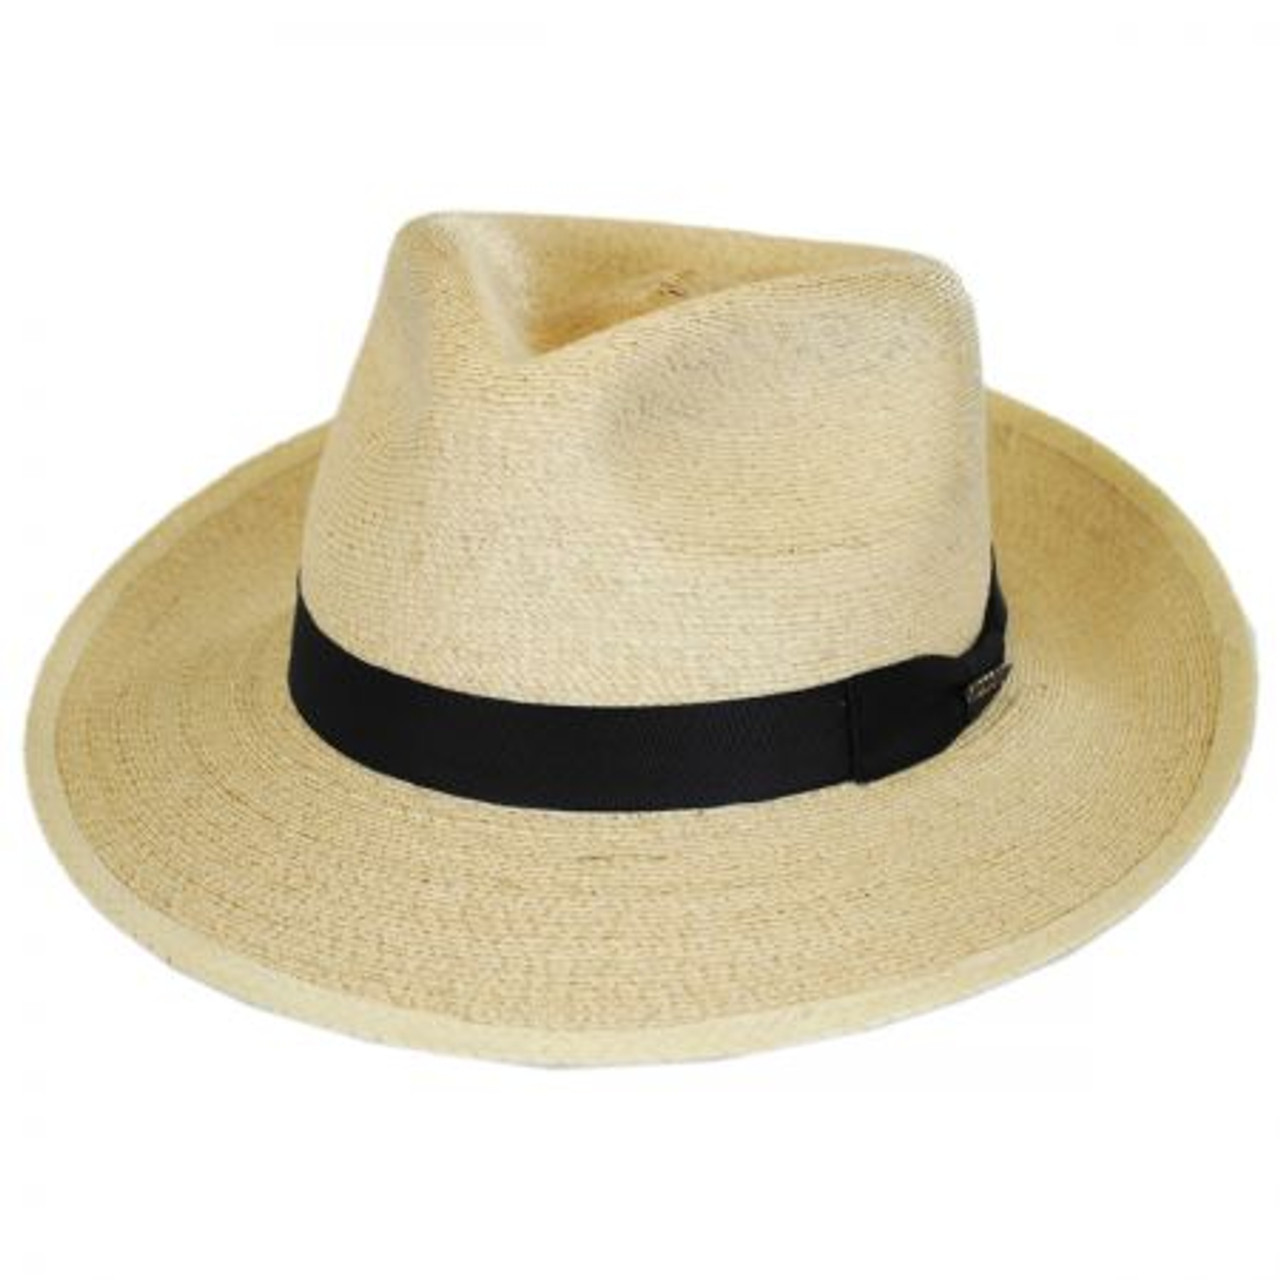 5f79f9fa784 Stetson - Rushmore Palm Leaf Straw Fedora Hat - Billy's Western Wear